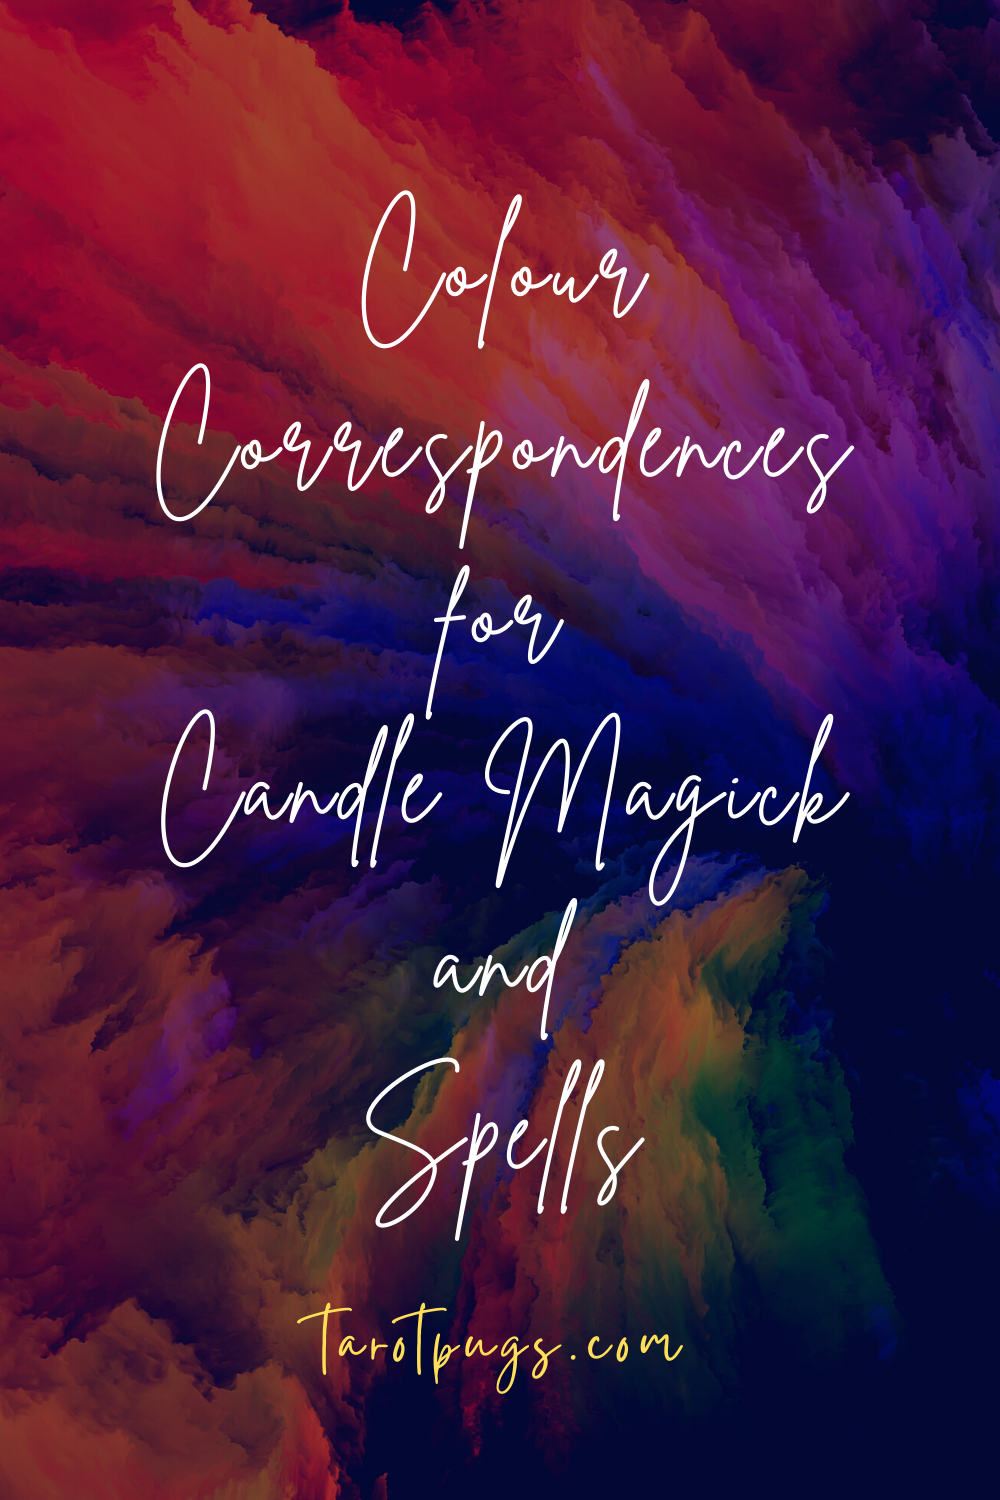 Colour Correspondences for Candle Magick and Spells Witchcraft TarotPugs Pinterest